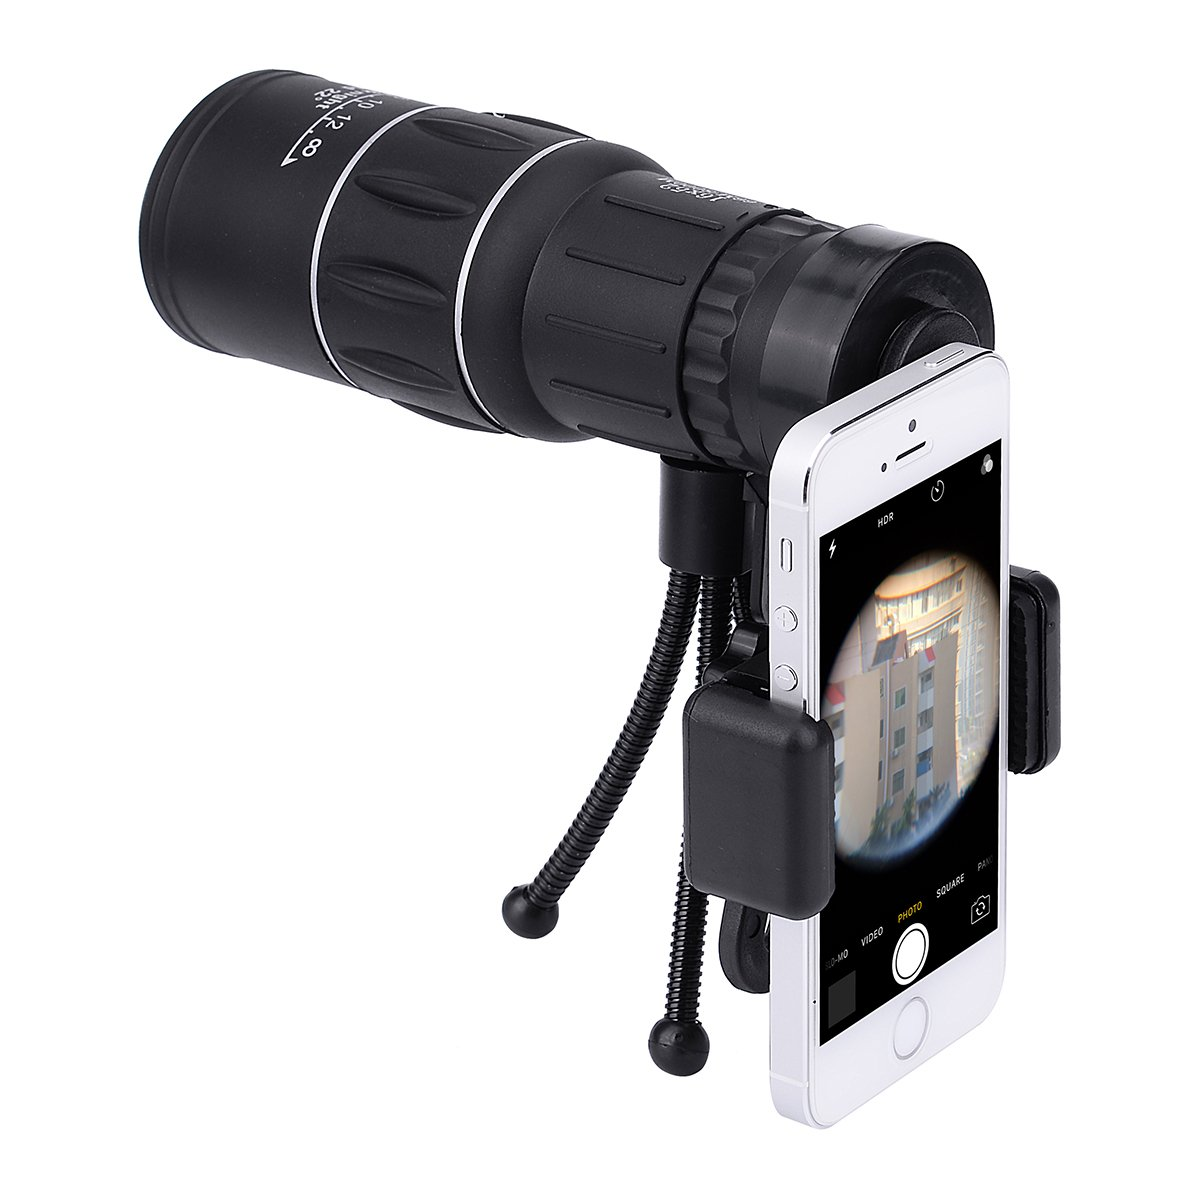 DJS Monocular Telescope 16x52 High Power Prism Scope Telescopio Smartphone Holder Mount Adapter Tripod Hunting Sports Outdoors Wildlife Travel by DJS